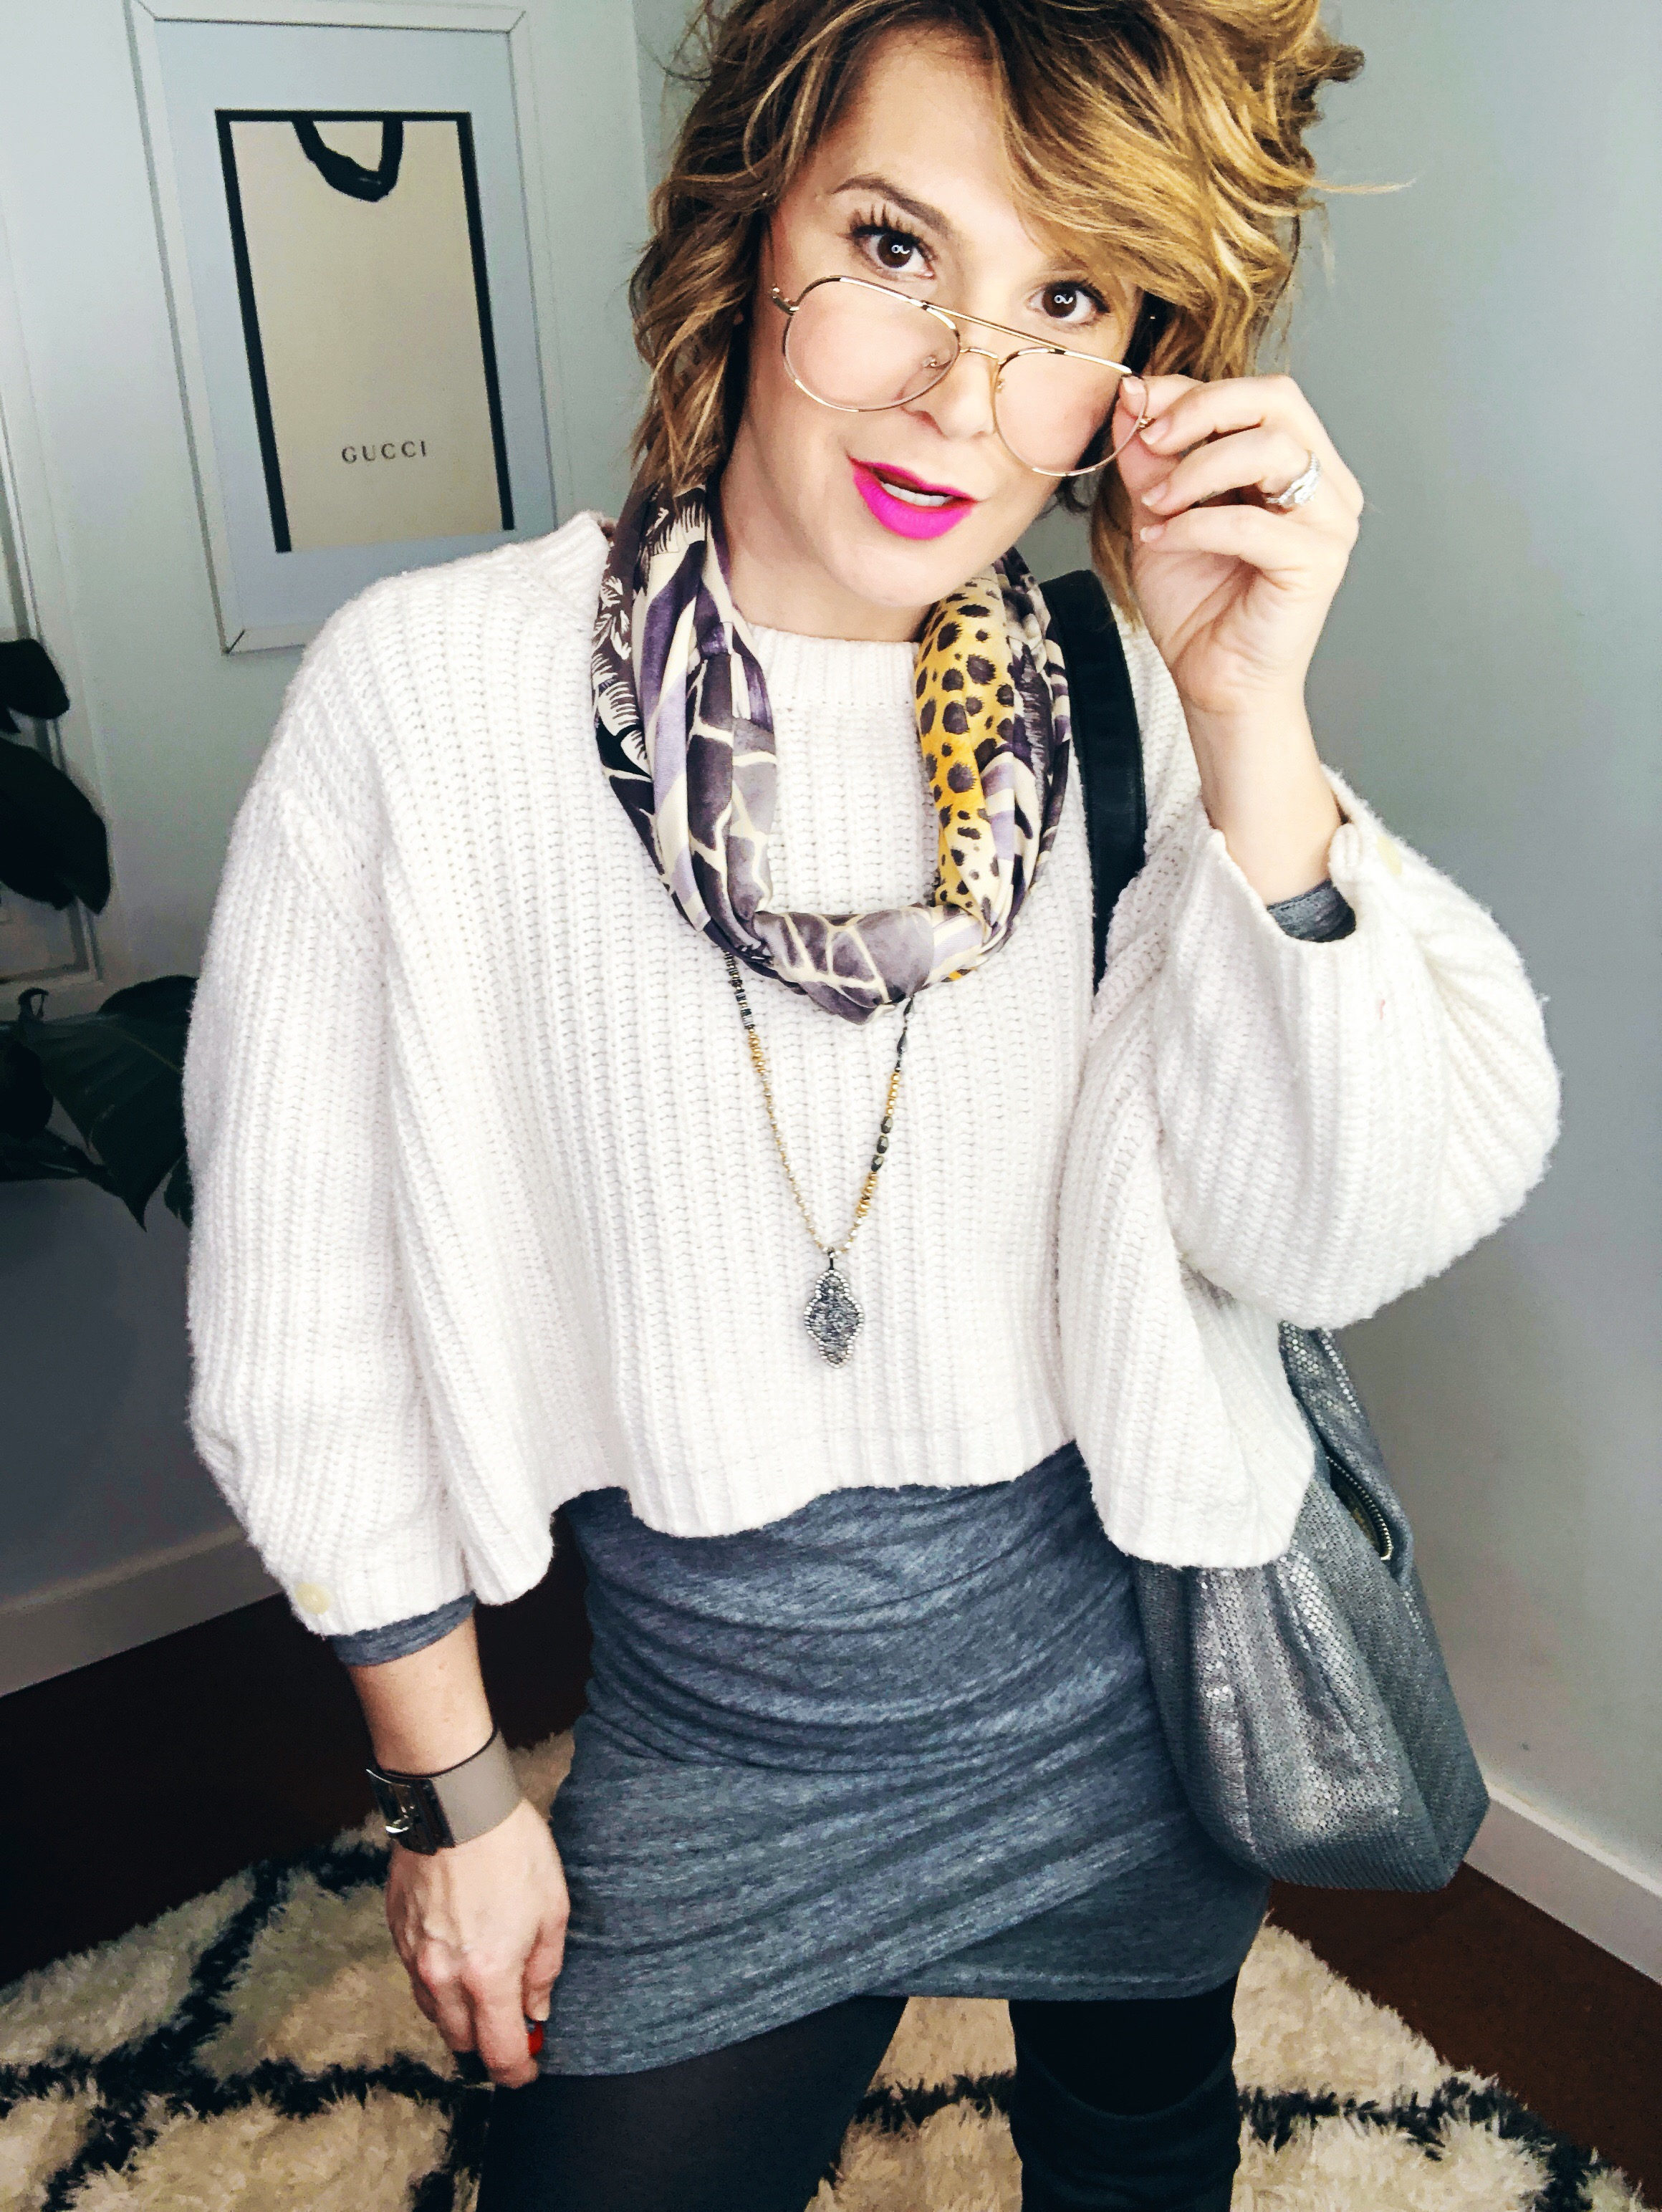 I've got a new look for 2019 | MappCraft.com  Outfit Credits: Dress, Leith (2018); Sweater, Anthropologie (2017); Scarf, Ferragamo (2010); Necklace, Stella & Dot (2015); Cuff, Hermes (2018); Glasses, Warby Parker (2018)